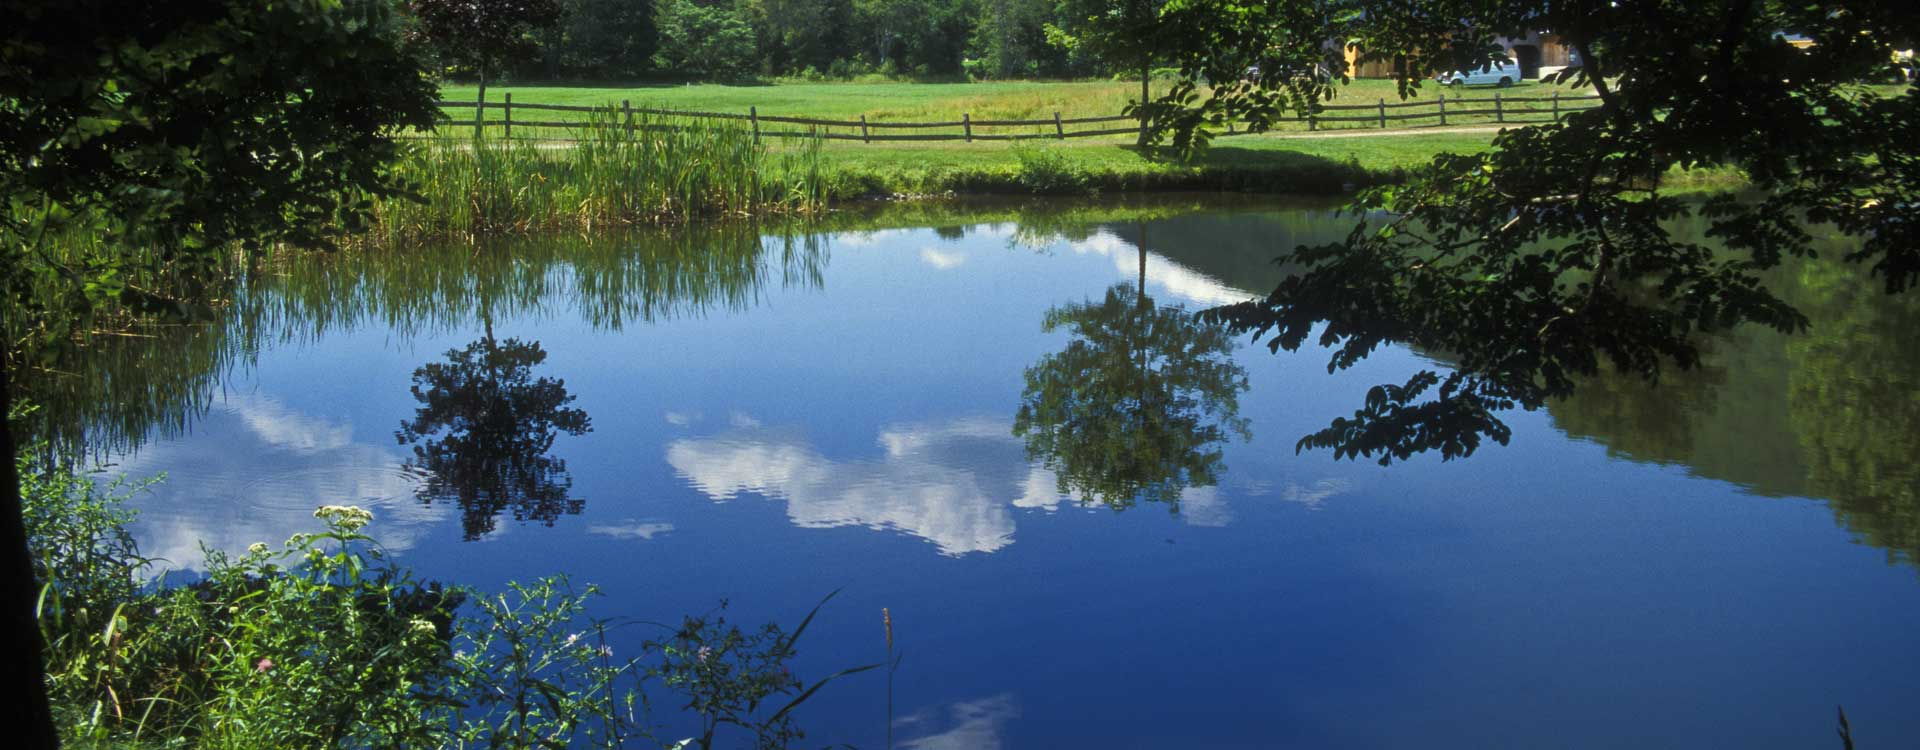 pond cleaning products supplies